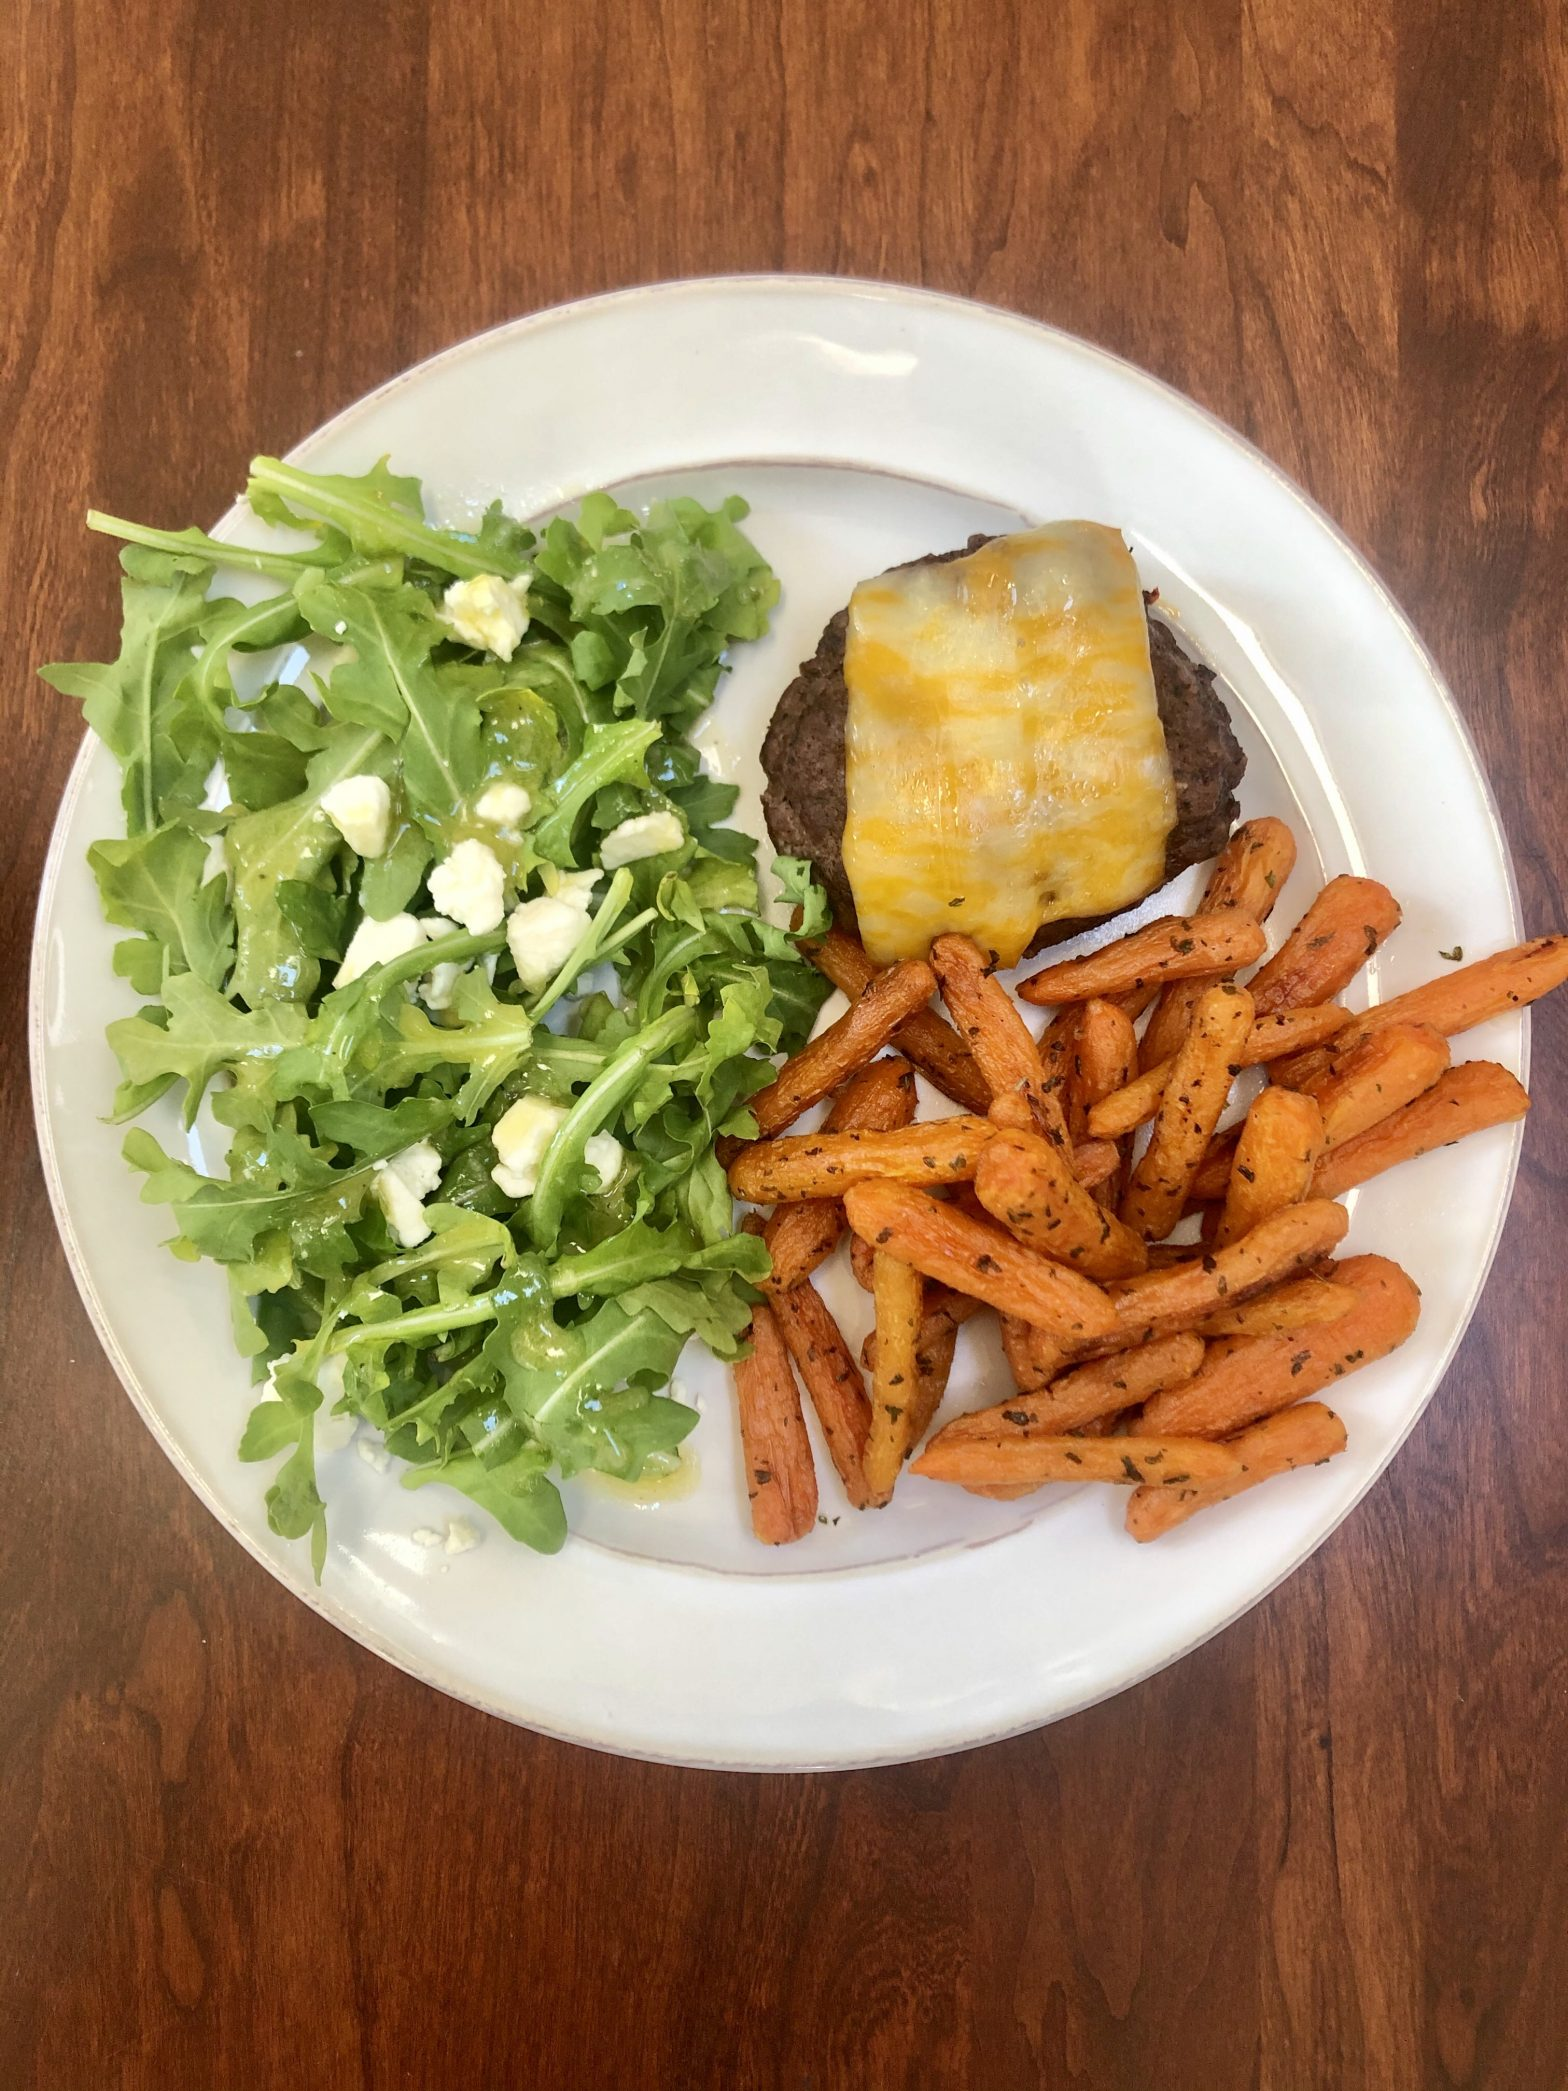 Burgers with Arugula Salad and Carrot Fries